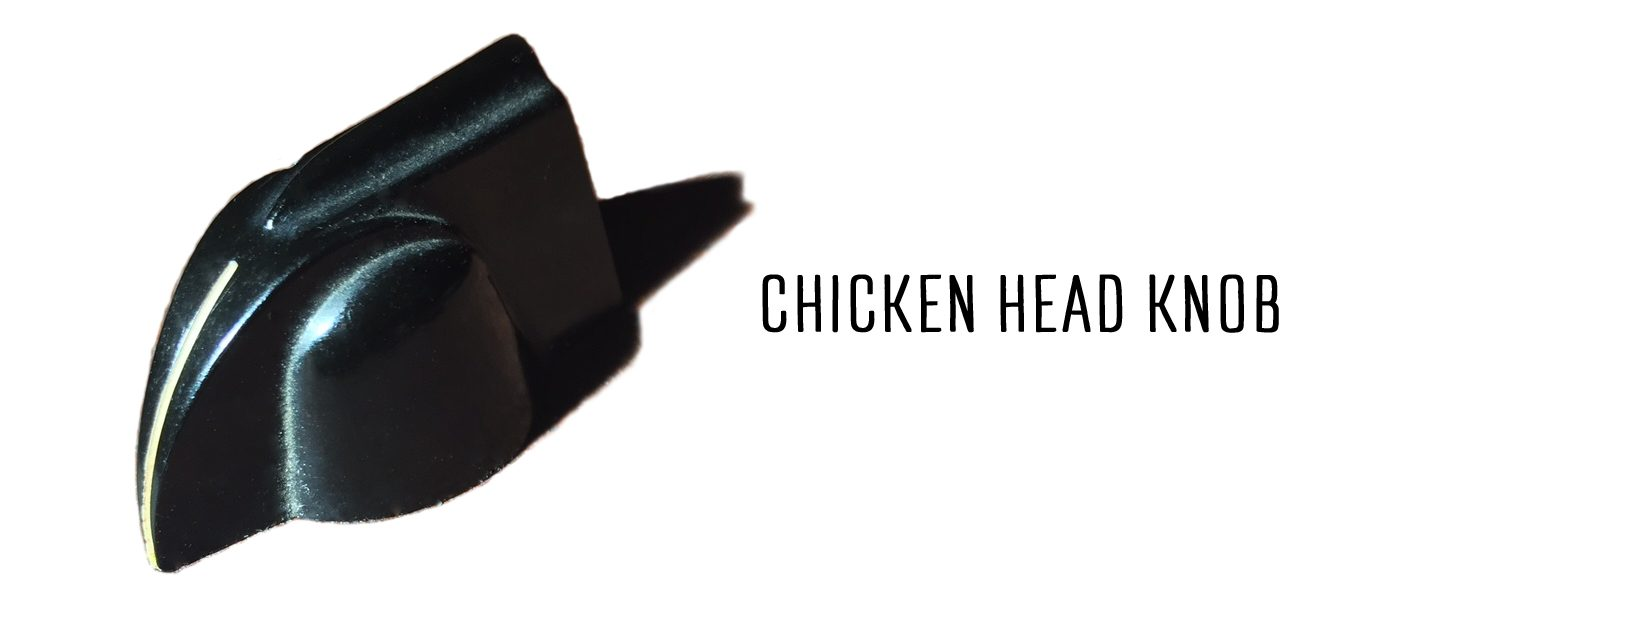 Chicken Head Knob